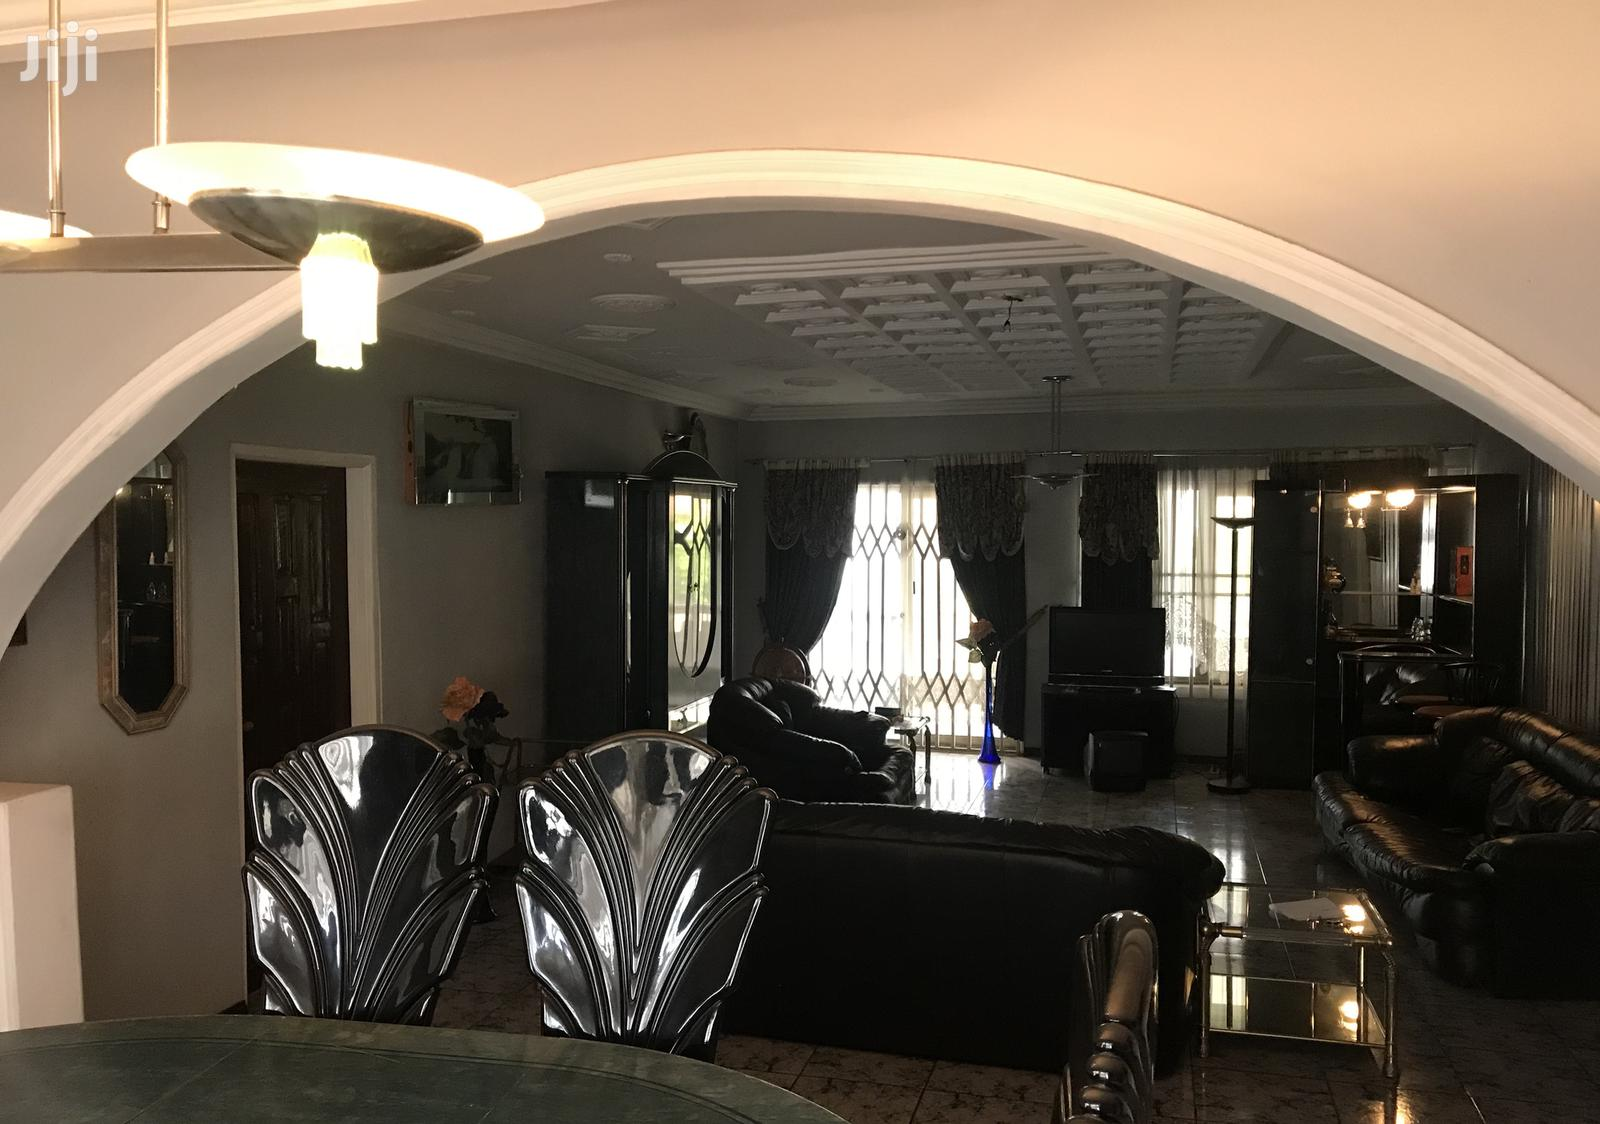 5 Bedrooms House For Sale At Achimota | Houses & Apartments For Sale for sale in Achimota, Greater Accra, Ghana